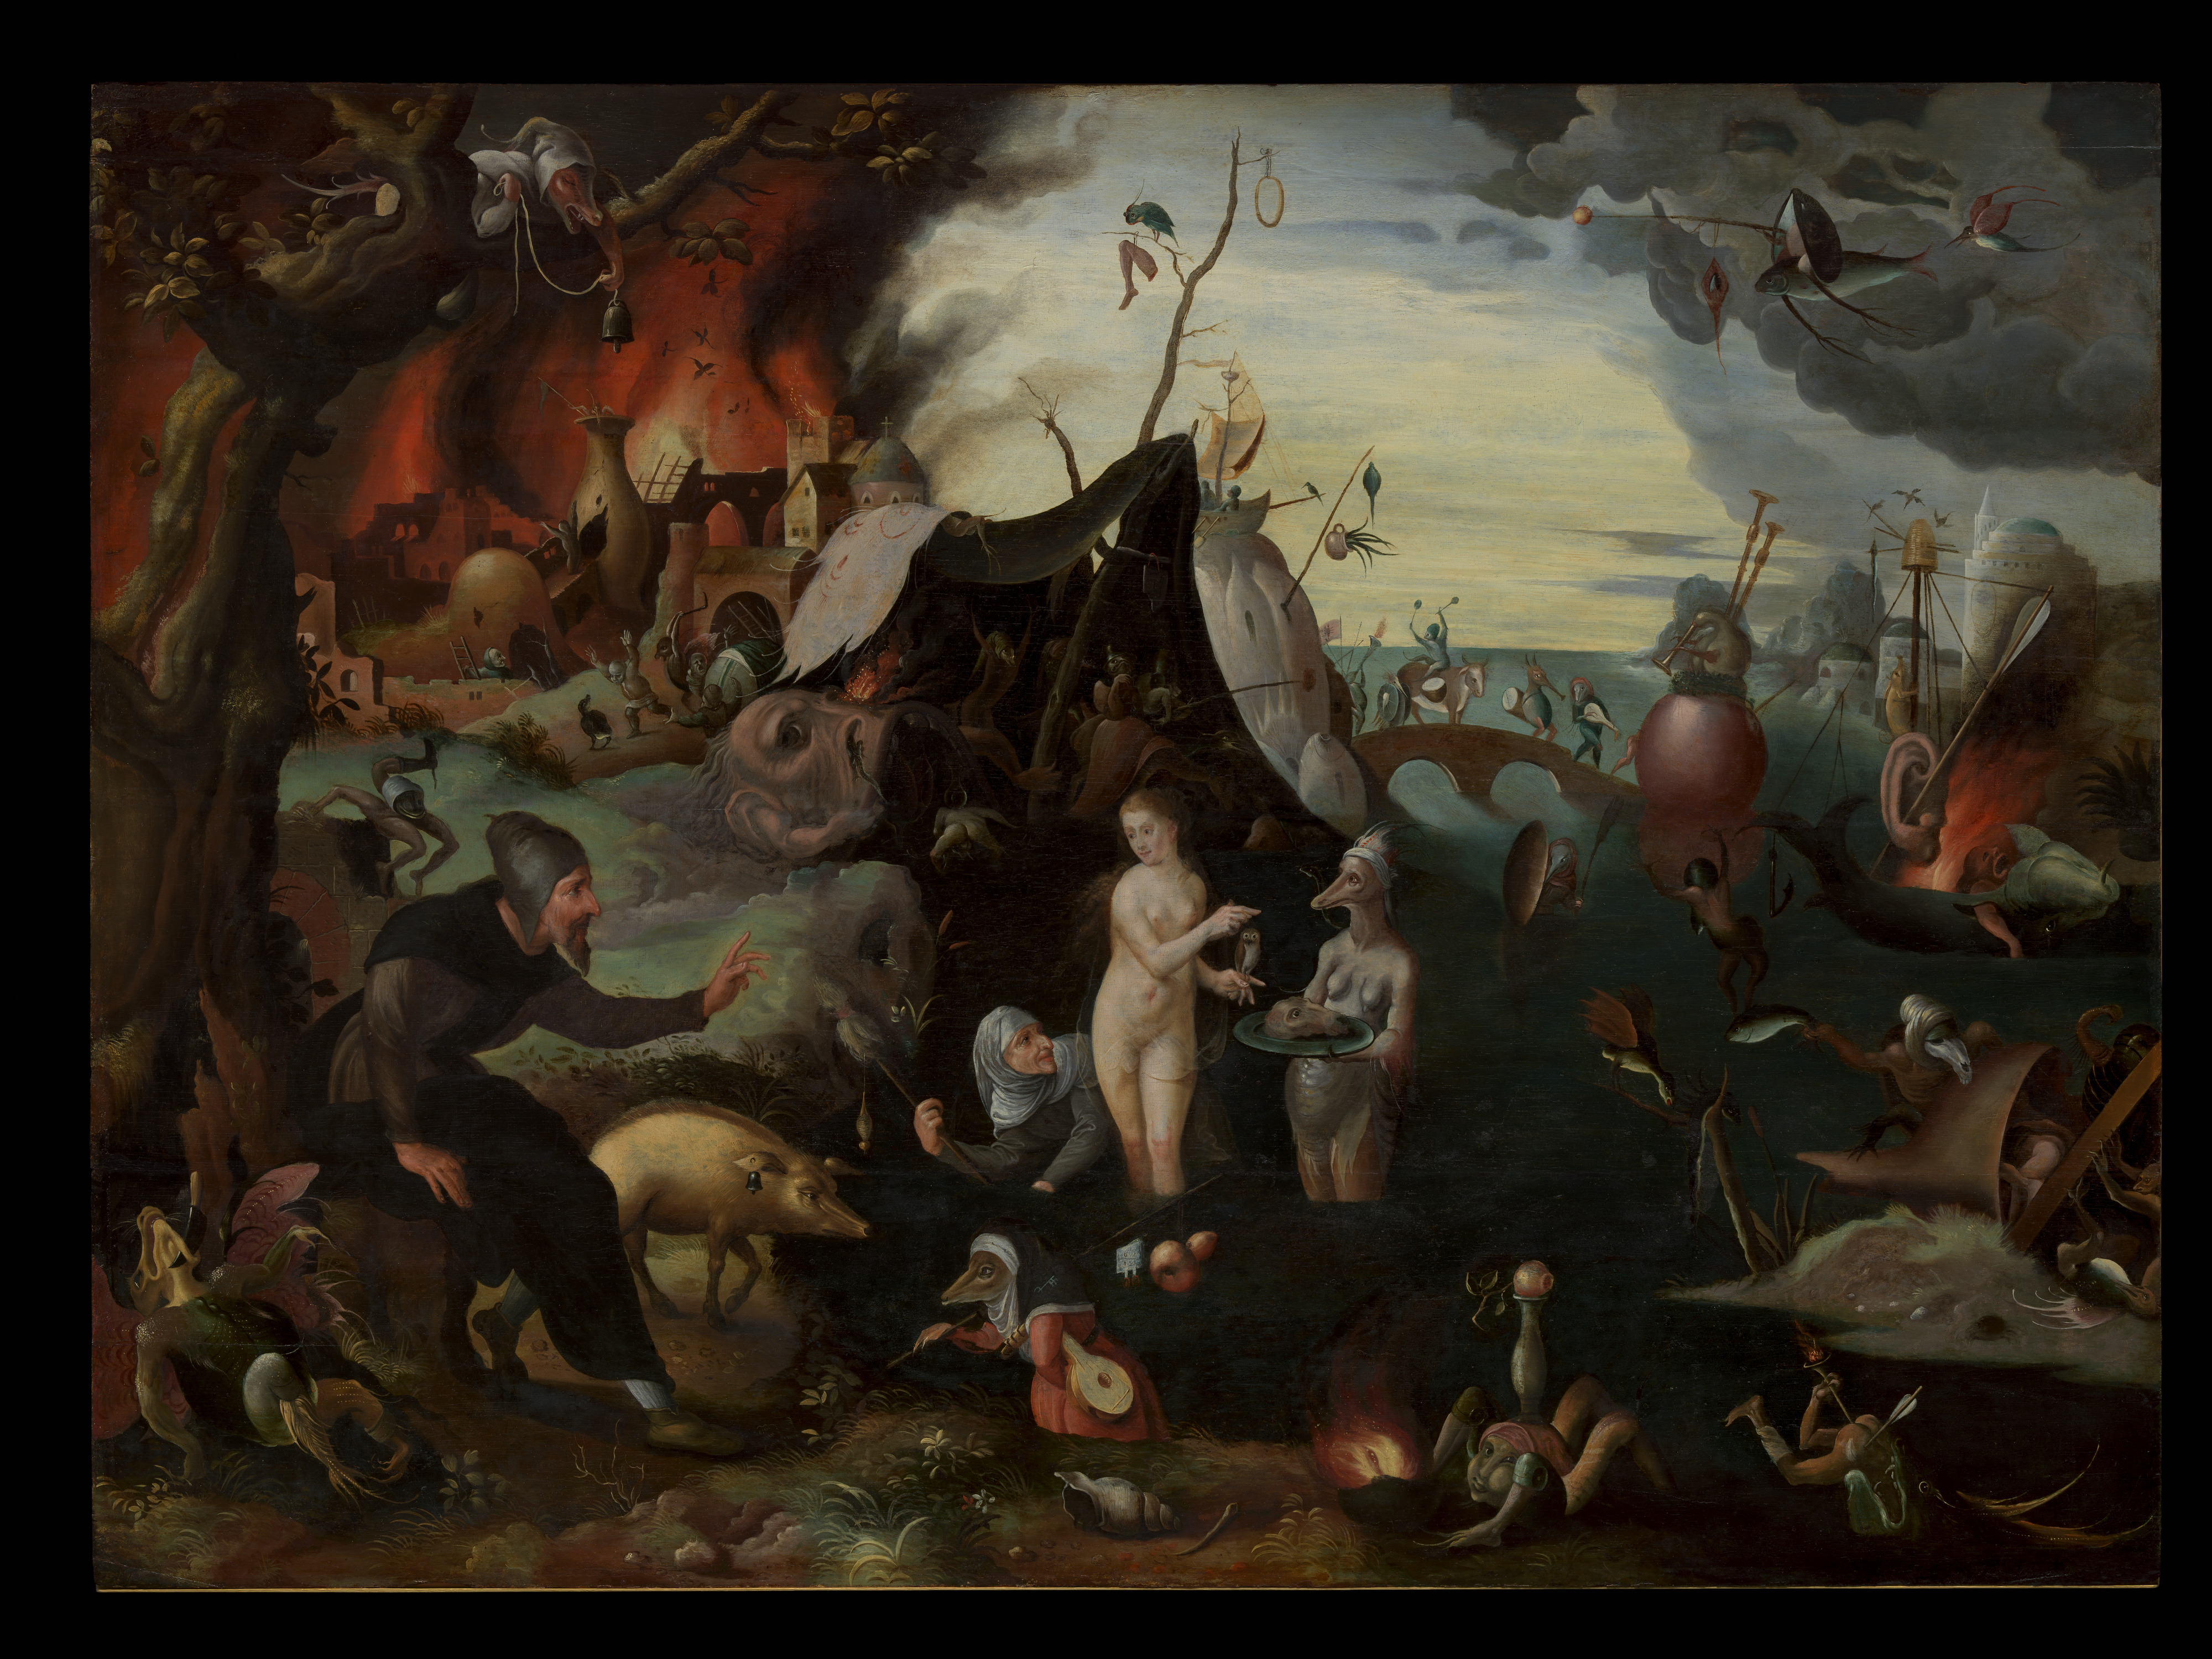 Attributed To Pieter Huys The Temptation Of Saint